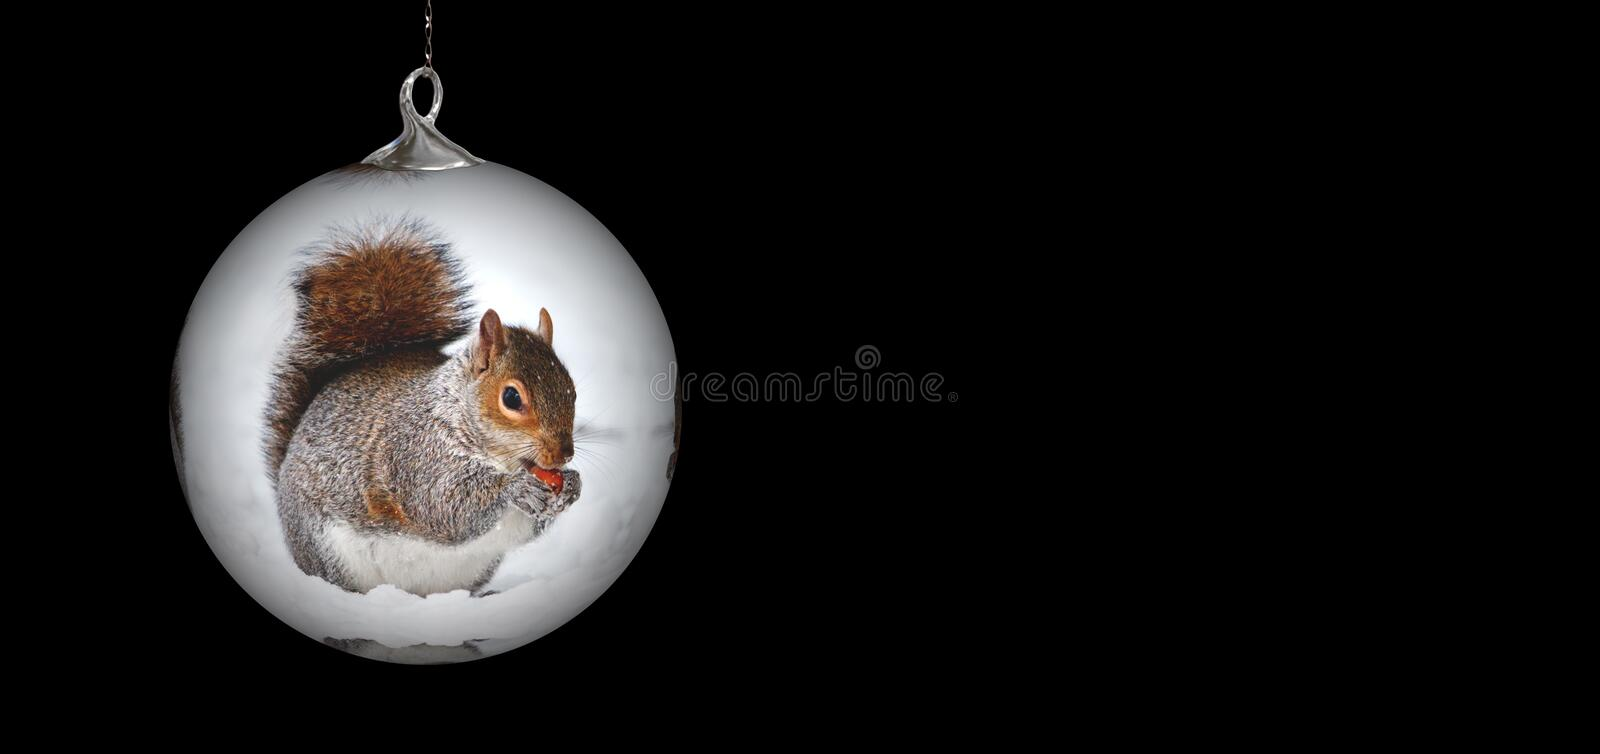 Mammal, Squirrel, Christmas Ornament, Rodent